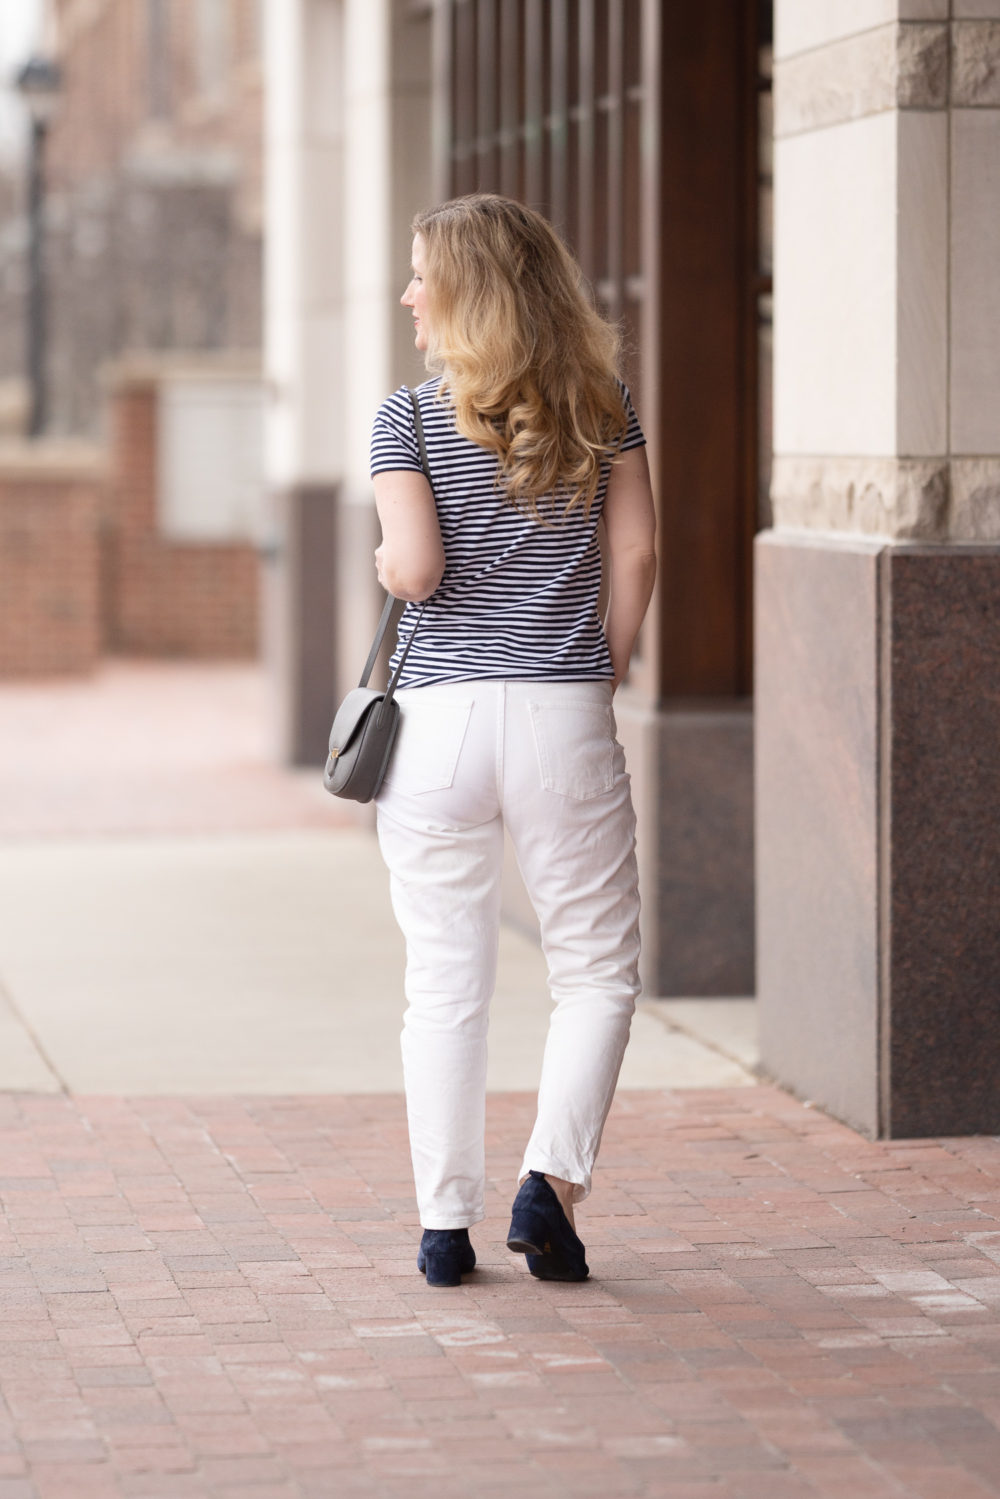 Petite Fashion Blog | Everlane Cotton V-Neck T-shirt | Everlane Cheeky Straight Jeans | Everlane Day Heel